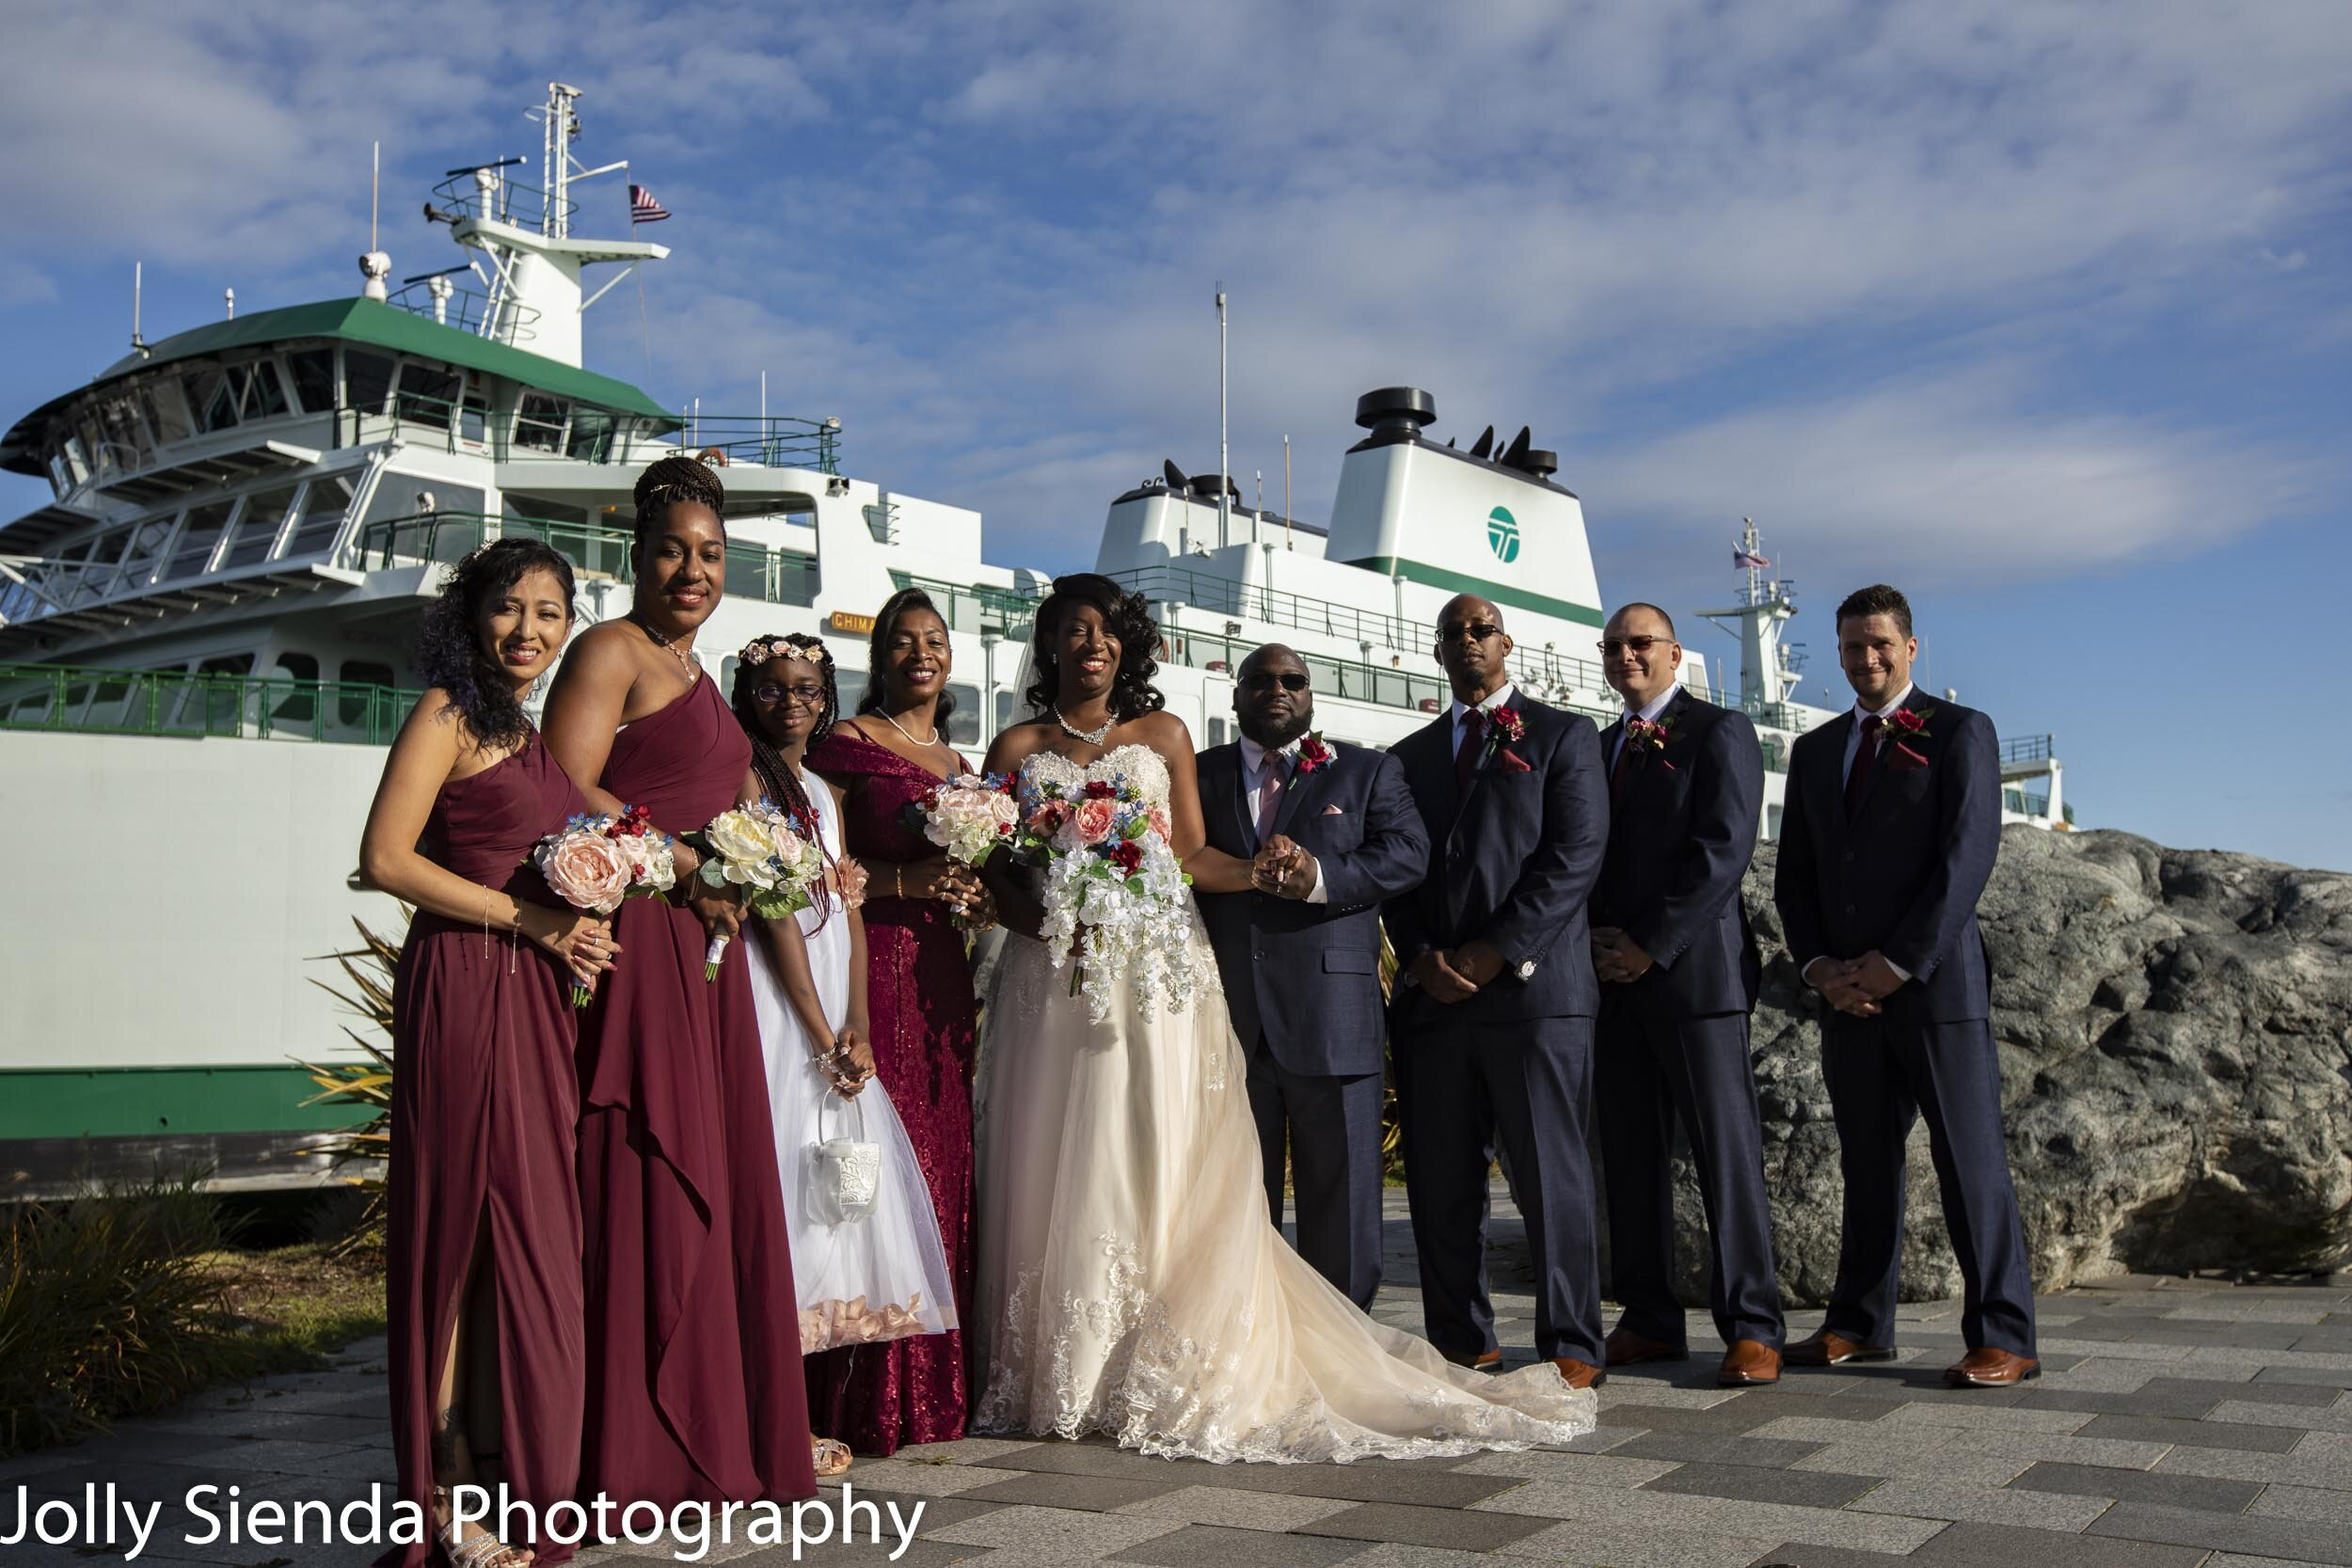 Marina and Malcolm with their wedding party at Harborside Fountain Park and the Bremerton Ferry.